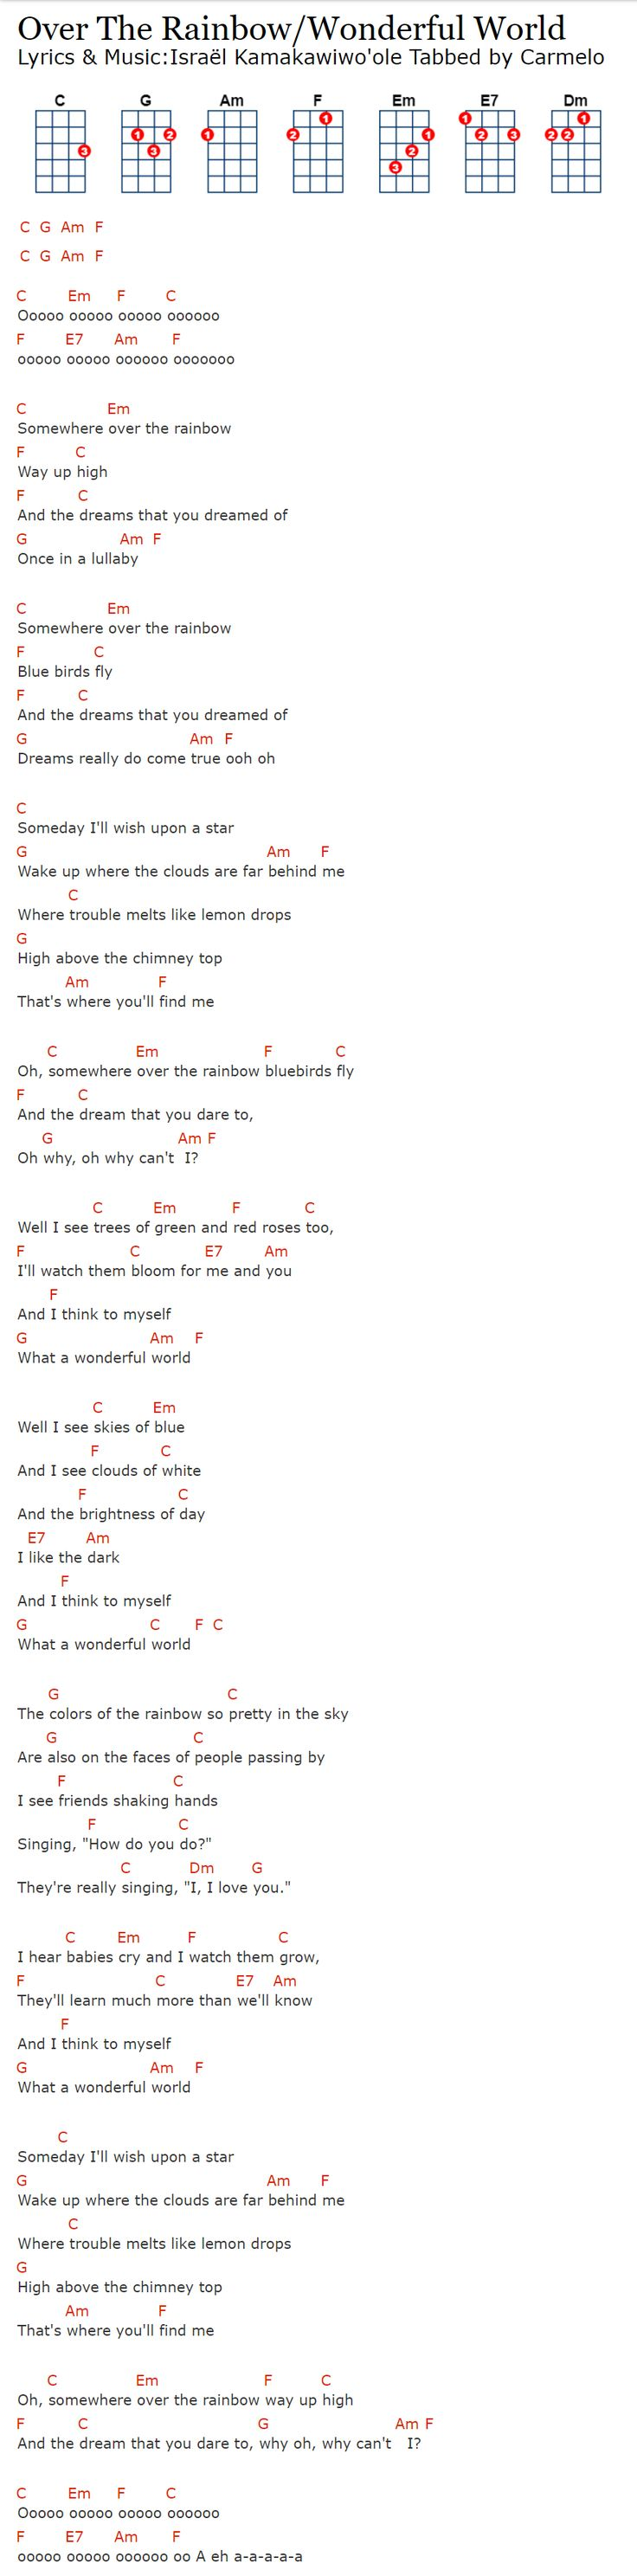 This one is more updated compared to the last one I have uploaded. Visit the page for how to strum it.